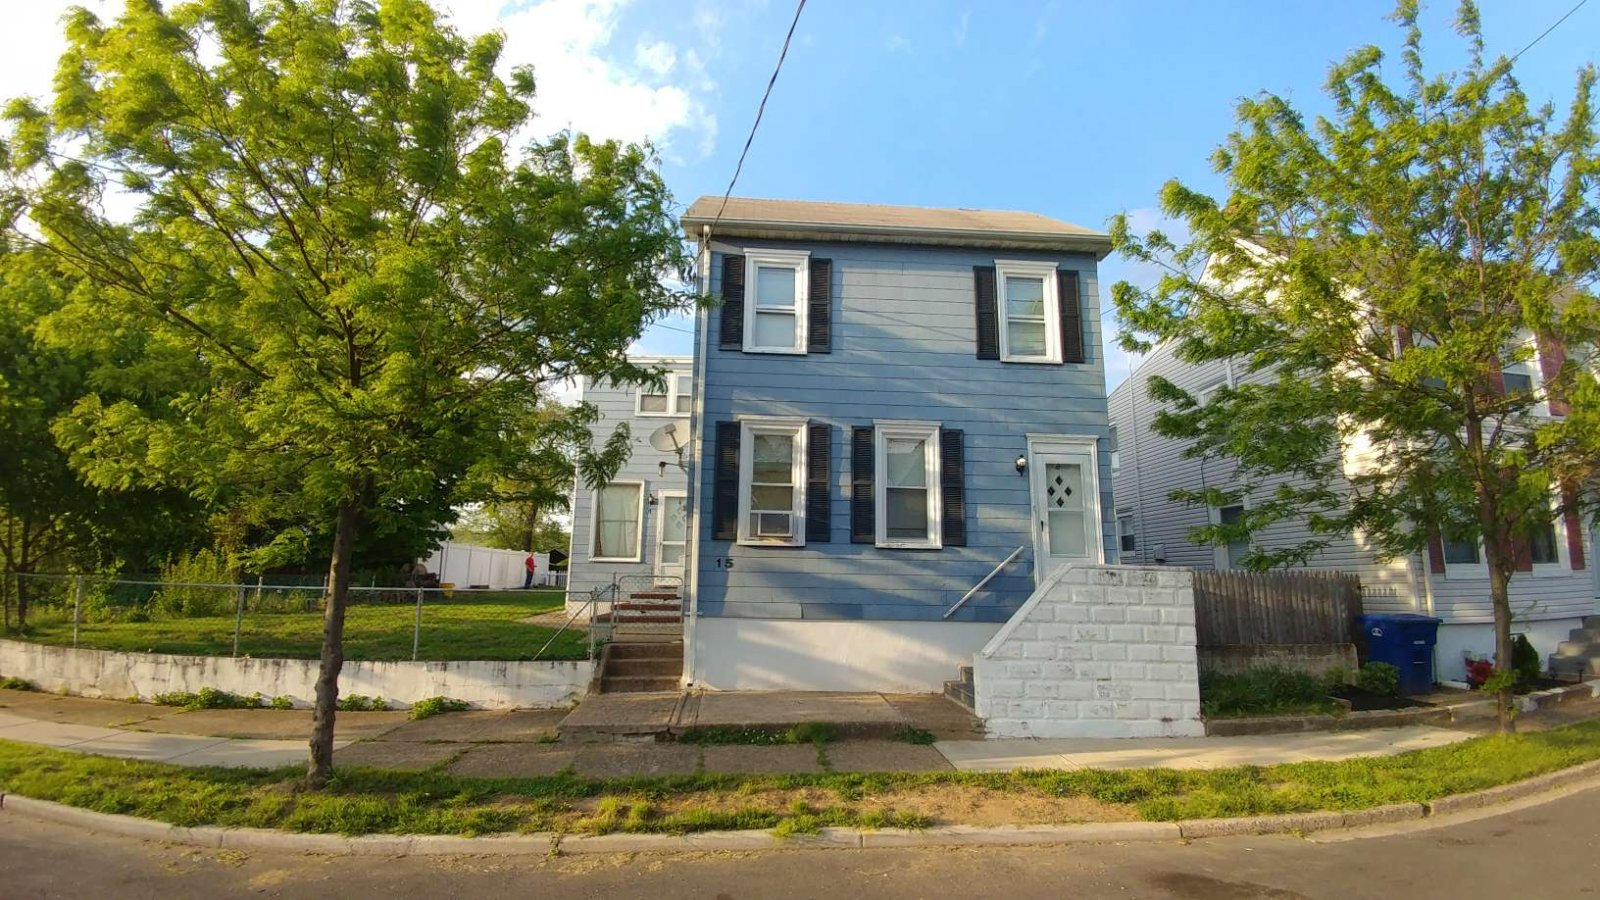 REP | 15 E 2ND ST, FLORENCE, NJ 08518  For Adults Tree House Plans on